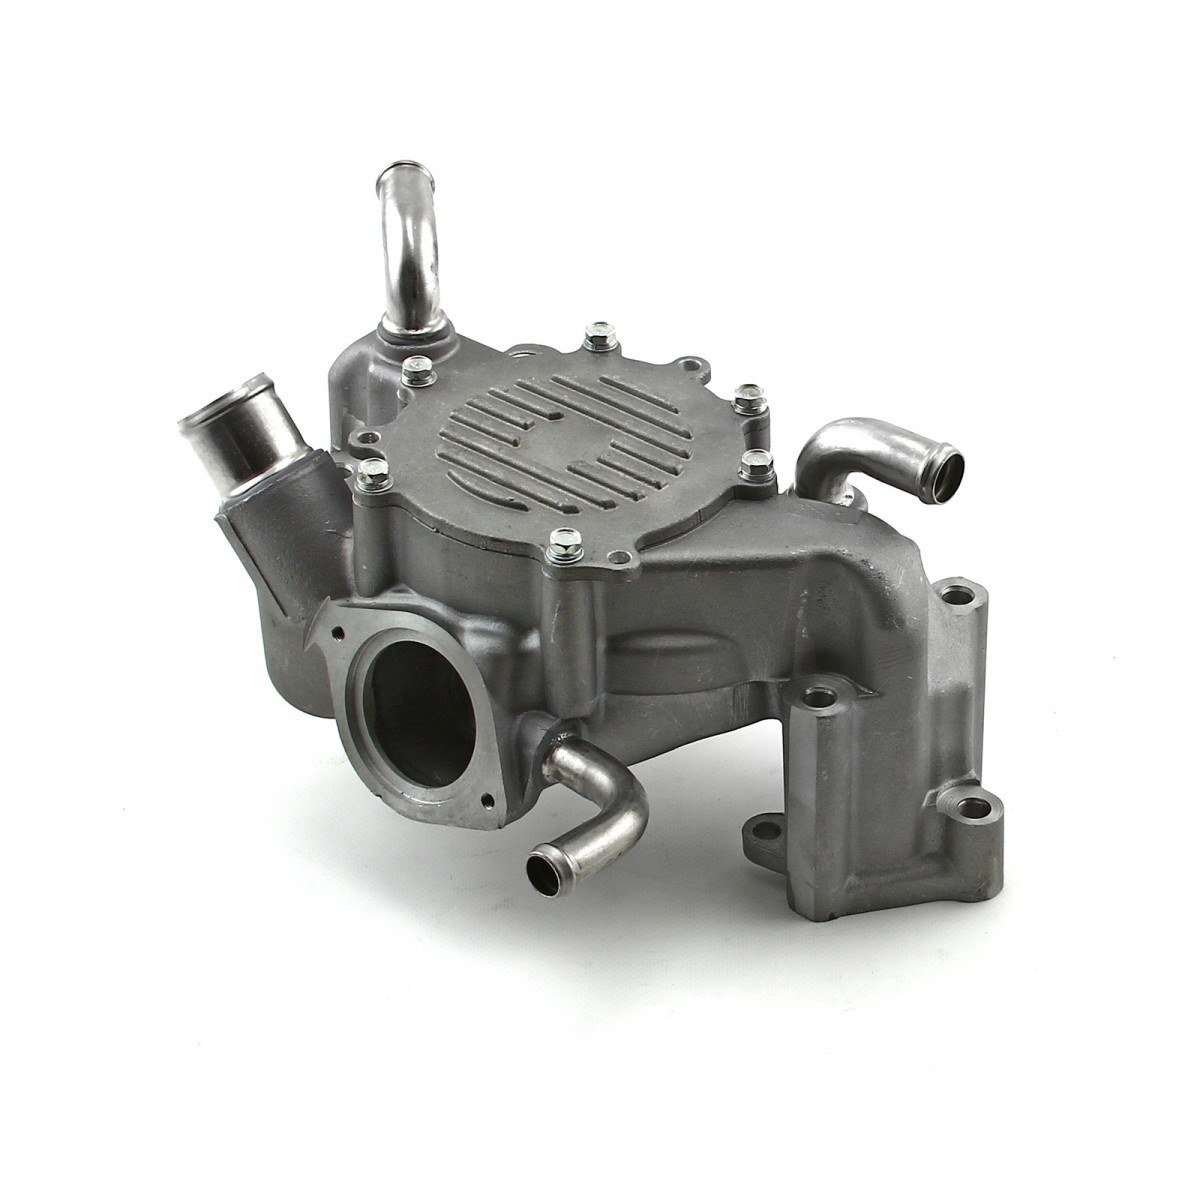 Chevy 350 Lt1 Engine 96 97: Chevy SBC 350 LT1 1993-94 High Volume Aluminum Water Pump